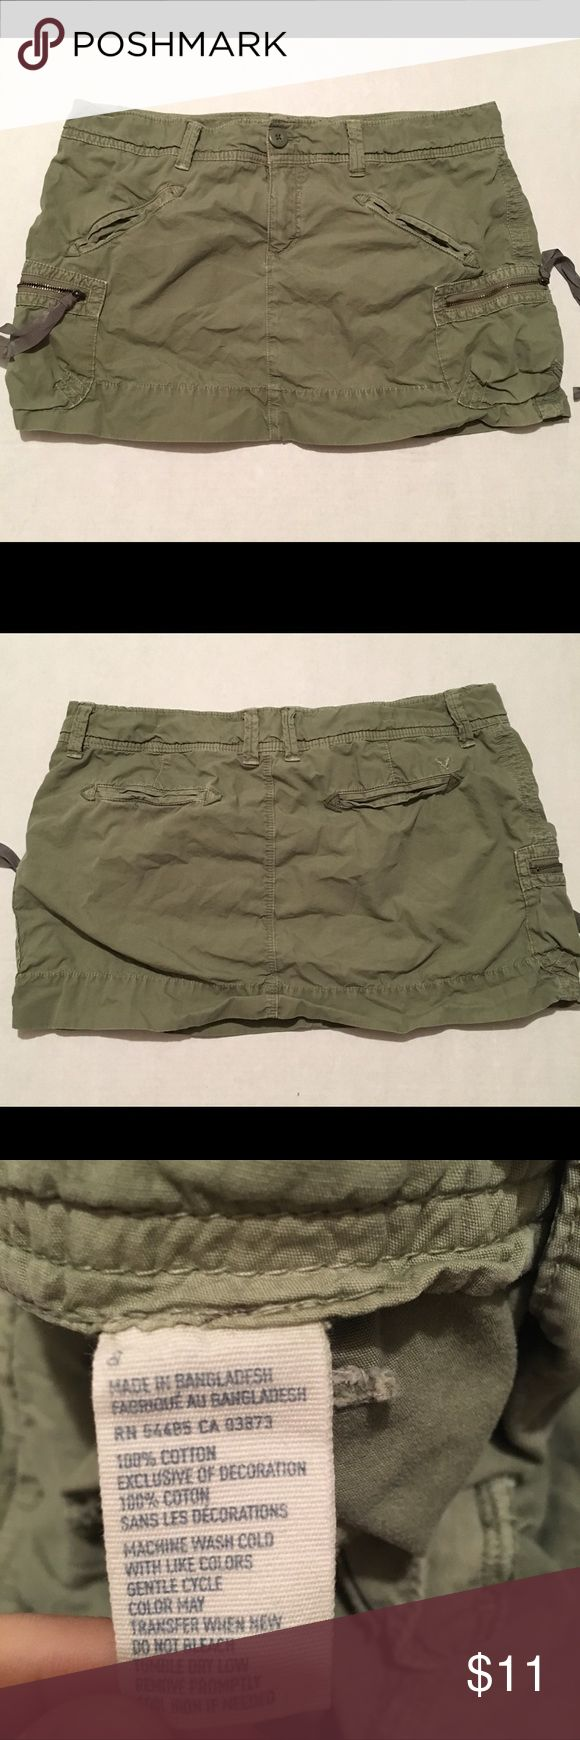 American Eagle women's Green Cargo Mini Skirt Sz 8 American Eagle Outfitters women's Green Cargo Mini Skirt Size 8. Please see all pictures for slight fading. Thanks for looking!! American Eagle Outfitters Skirts Mini